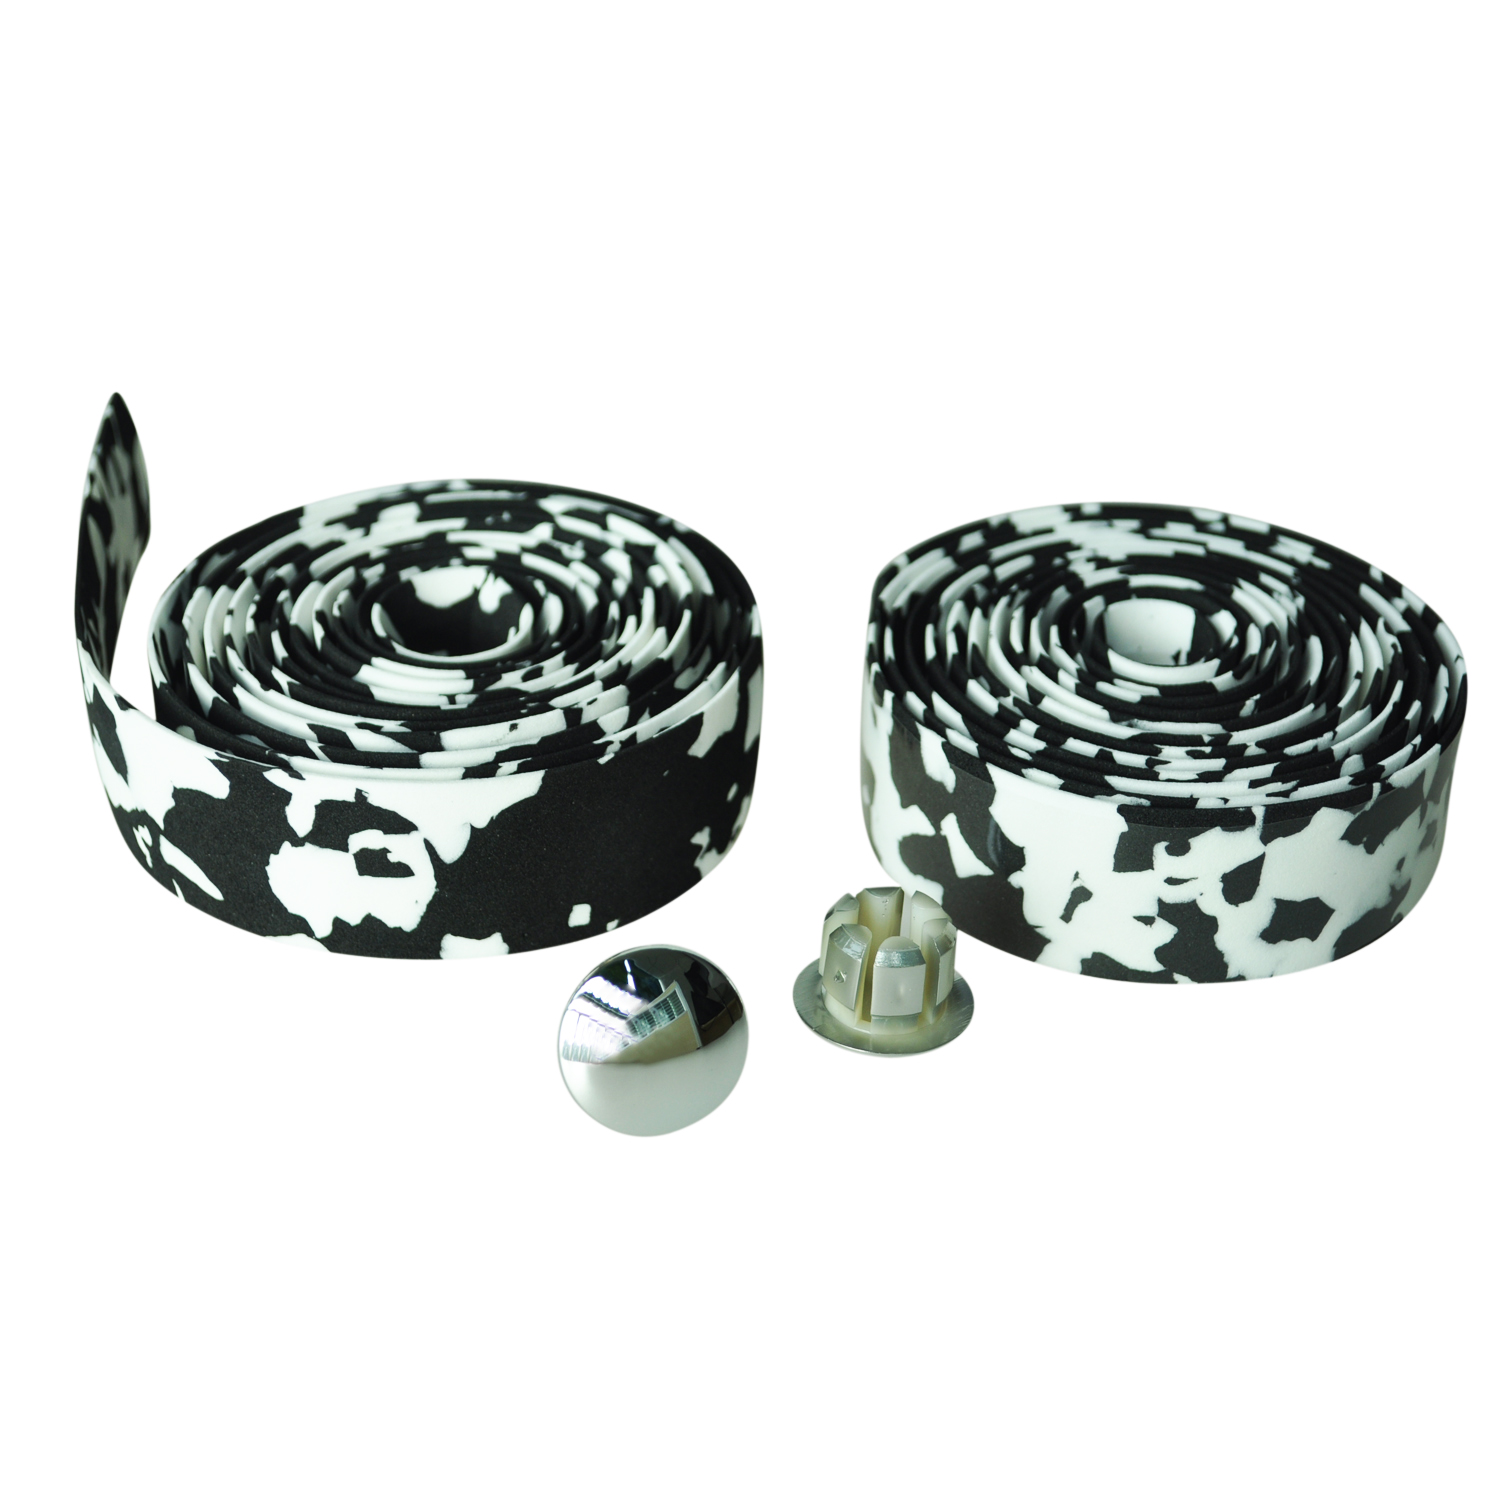 Road Bike Bicycle Cork Handlebar Bar Grip Wrap Tape + 2 Bar Plugs-black & White Camo Preventing Hairs From Graying And Helpful To Retain Complexion